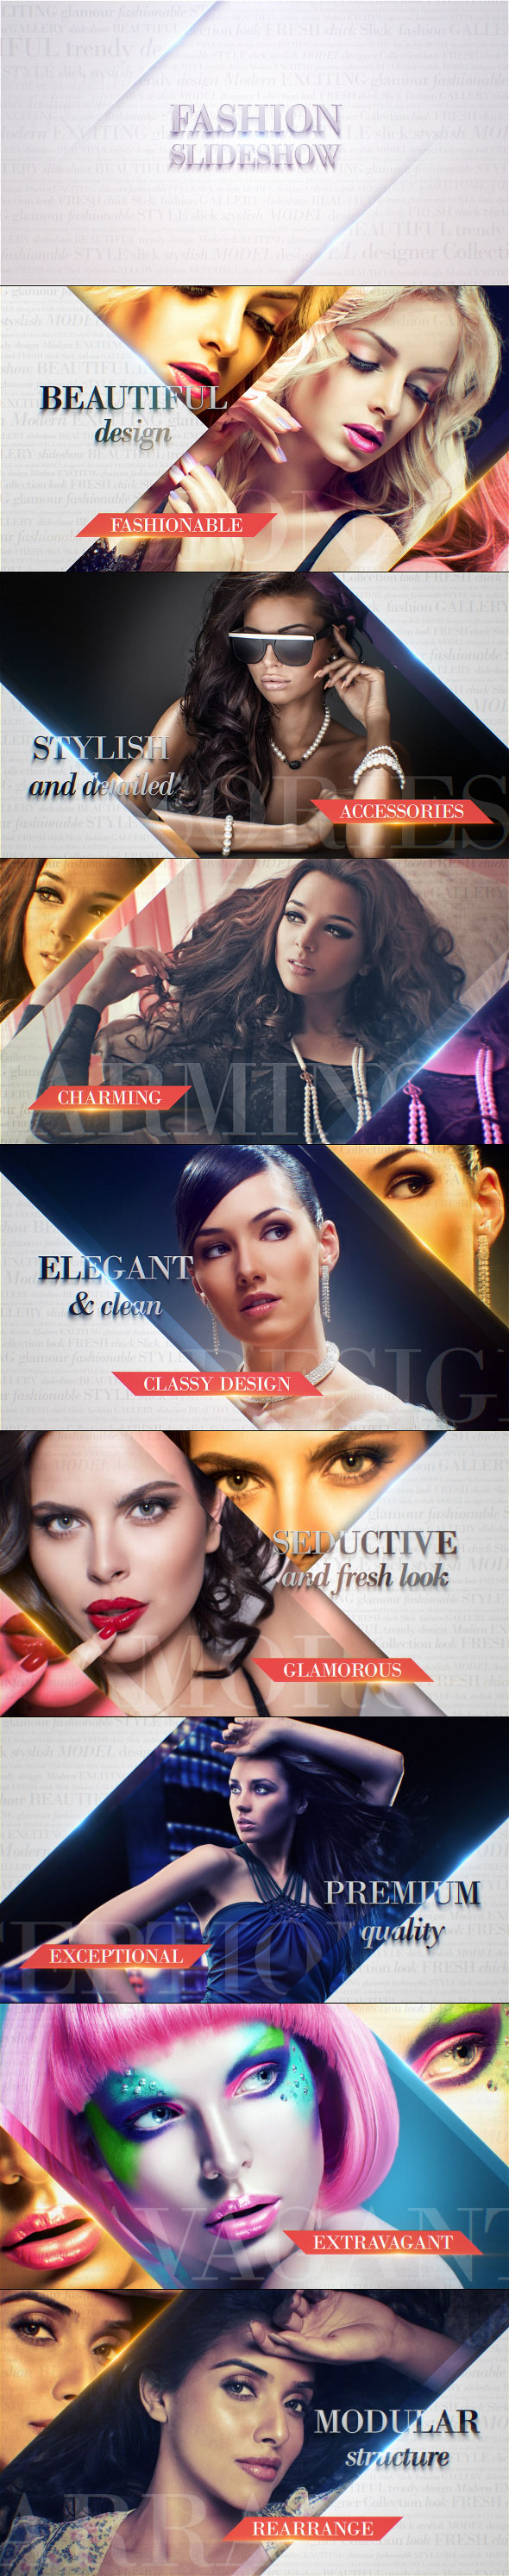 Fashion Slideshow After Effects Intro Template